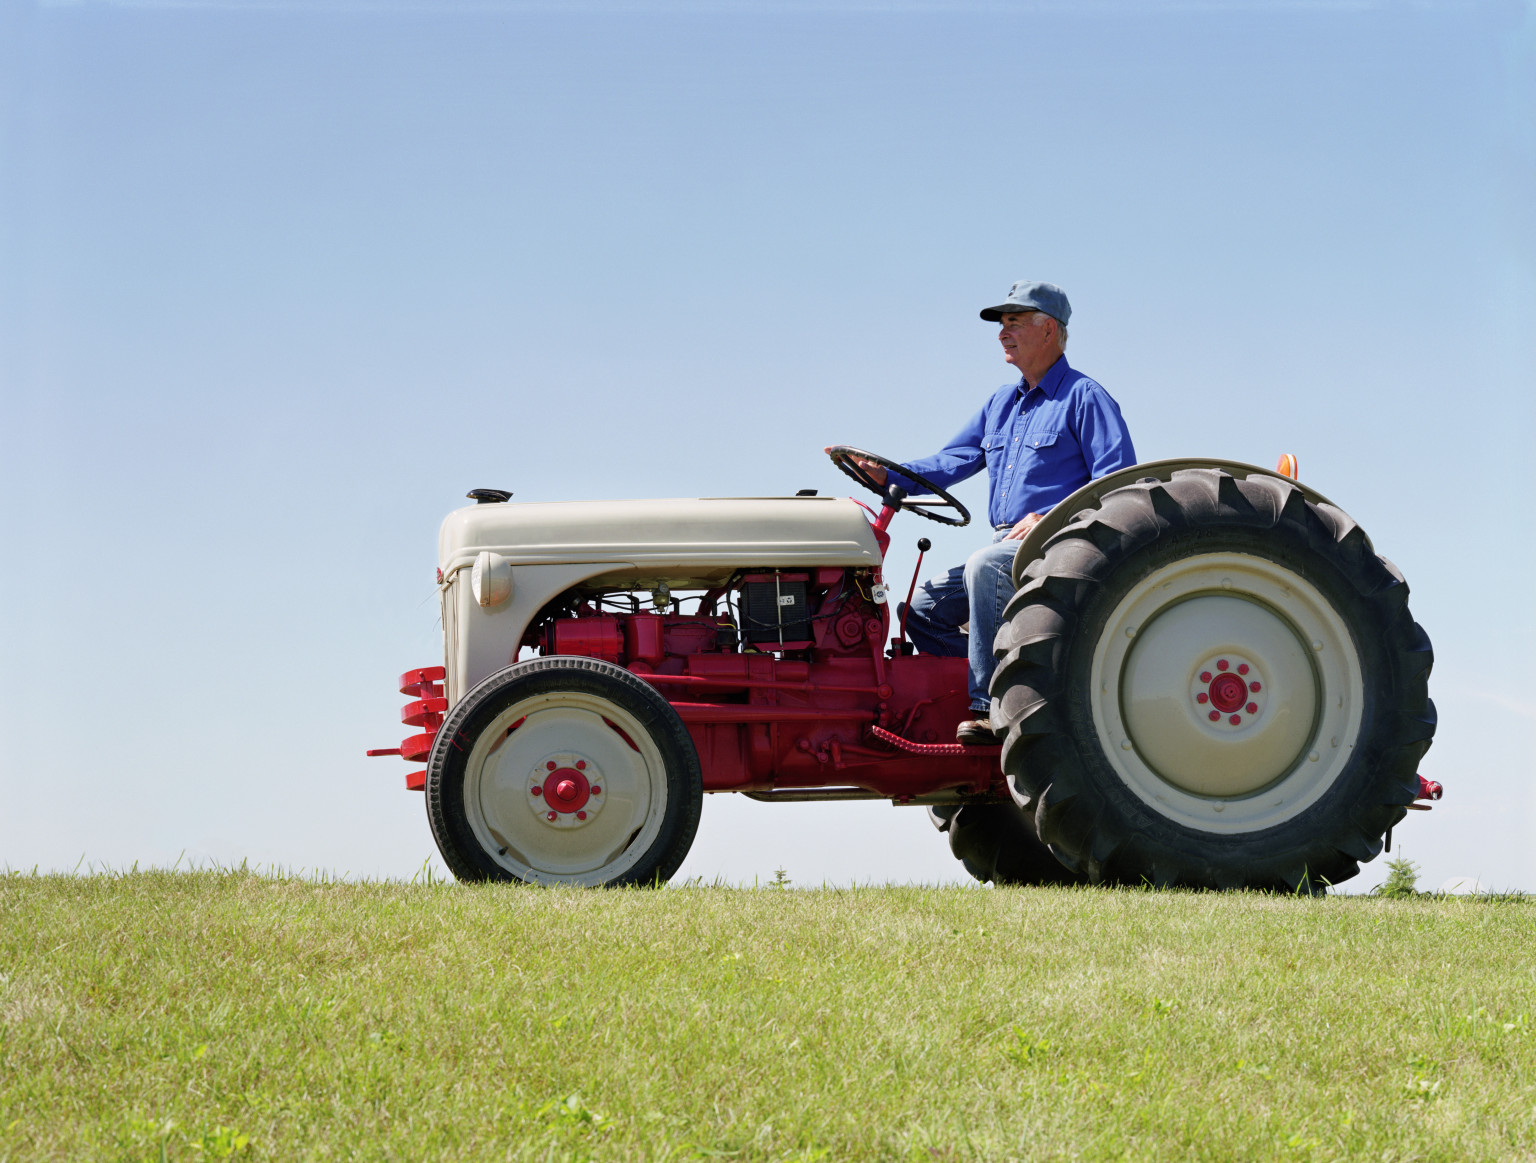 Drawing Man On Tractor : Man on a tractor picture america s best lifechangers